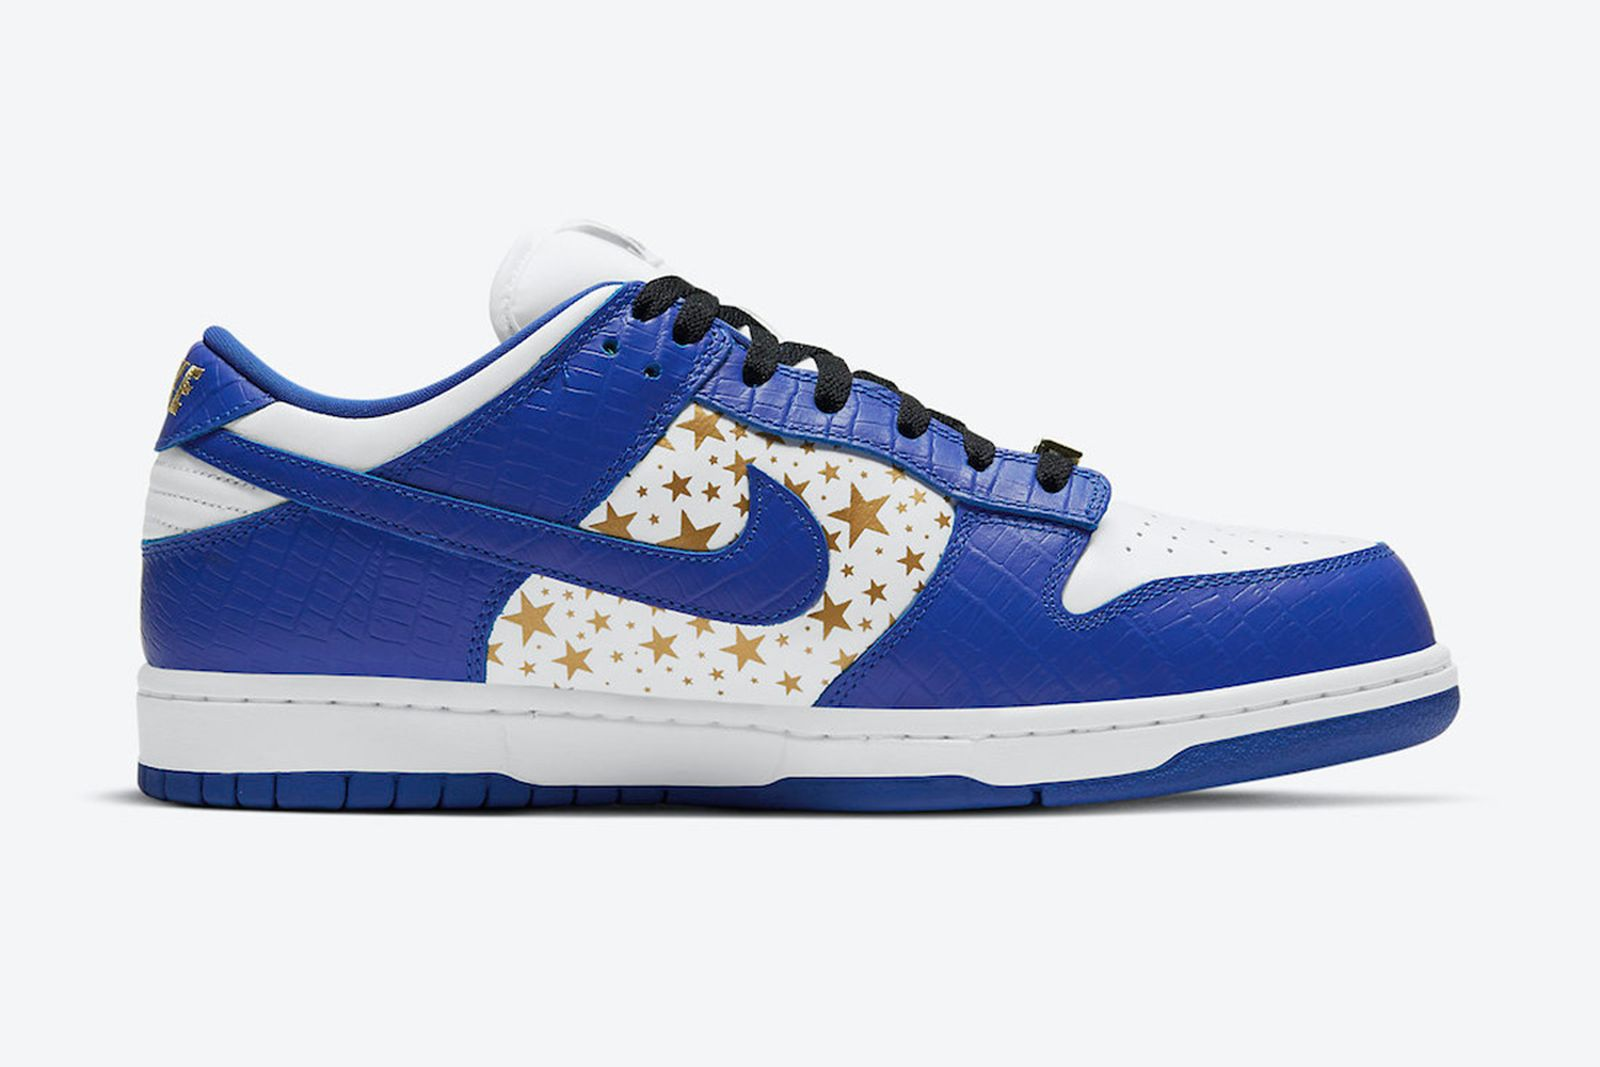 supreme-nike-sb-dunk-low-hyper-blue-release-date-price-02